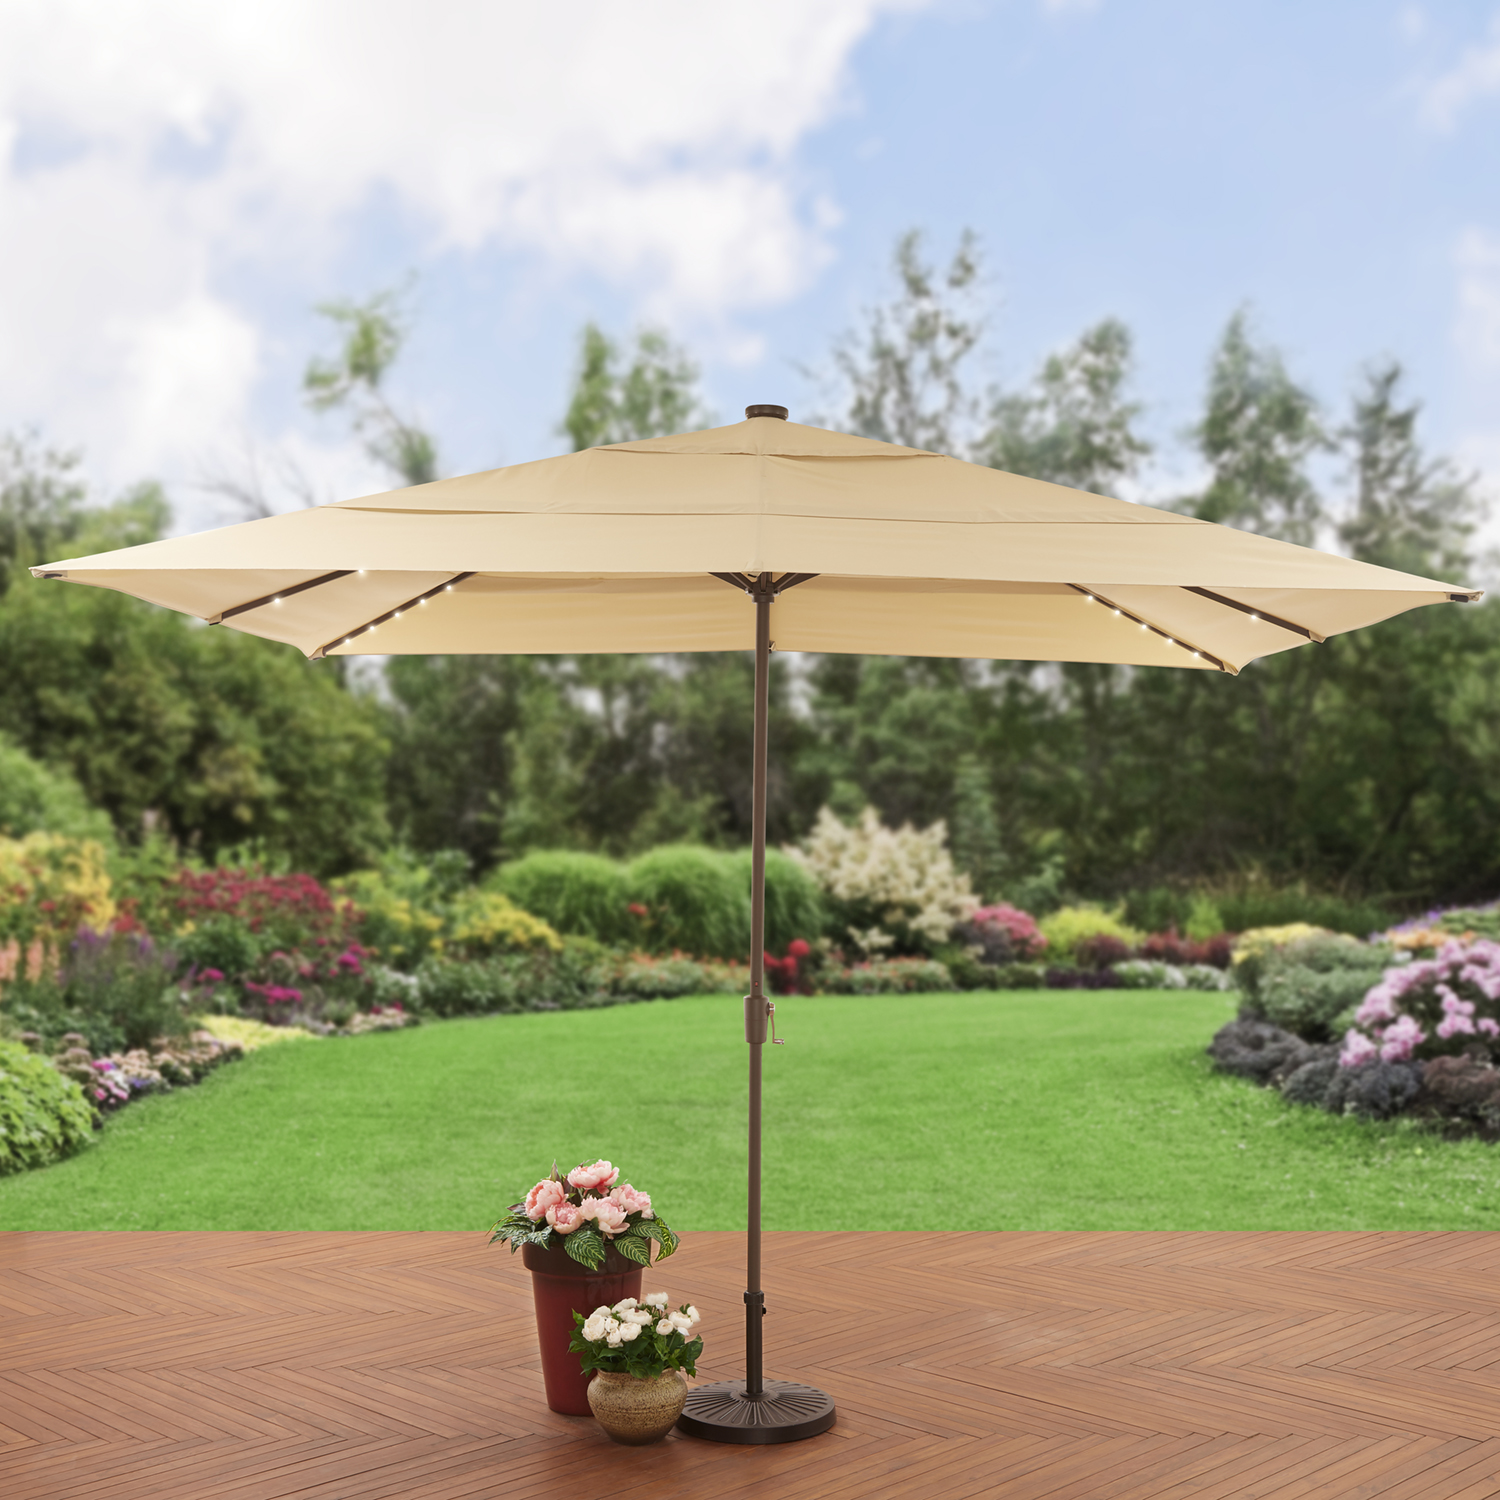 Better Homes and Gardens Aluminum Solar Lighted Patio Umbrella by NINGBO EVERLUCK OUTDOOR PRODUCTS MANUFACTING CO LTD